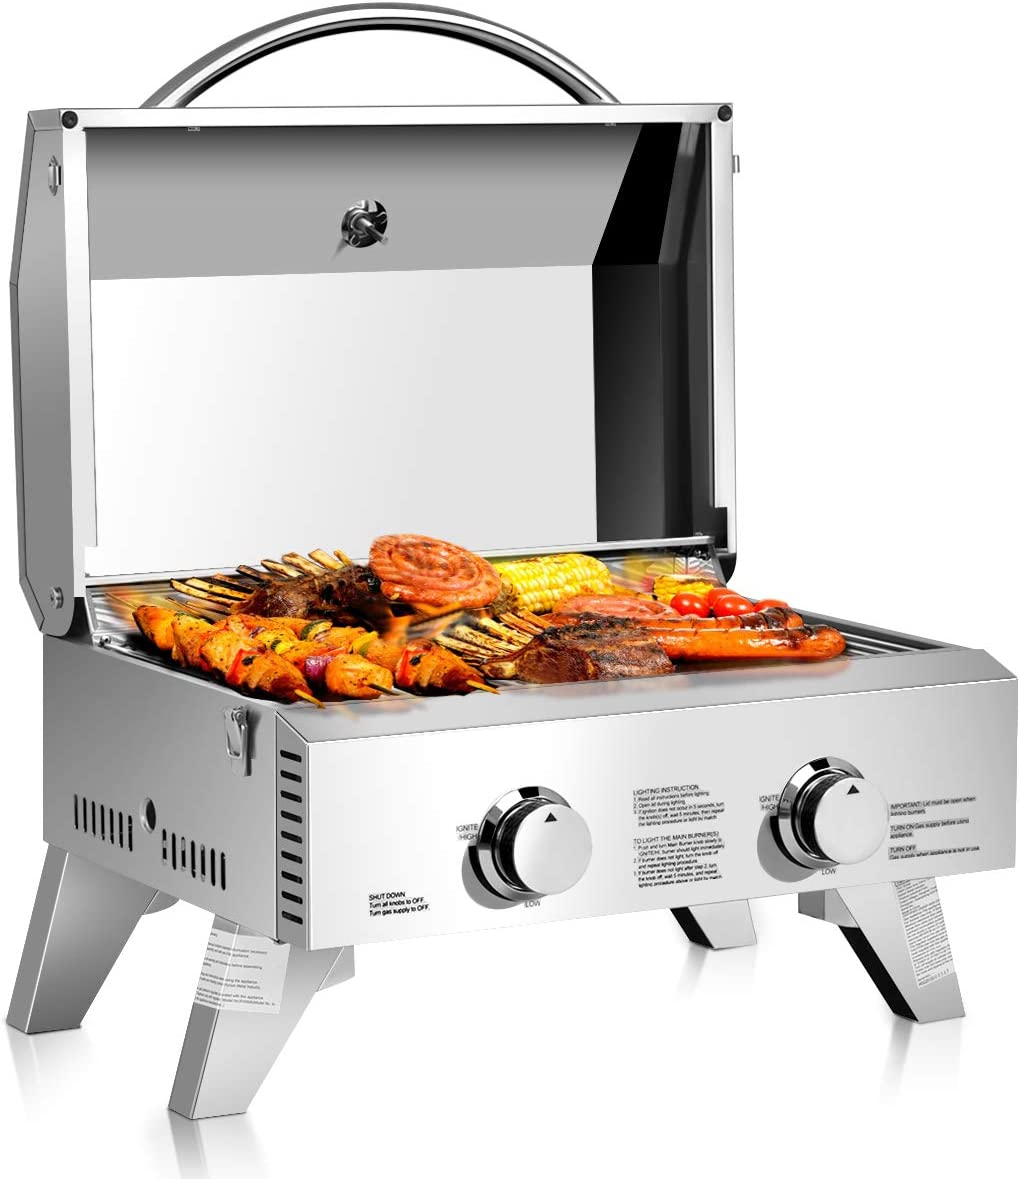 Giantex Propane Tabletop Gas Grill Stainless Steel Two-Burner BBQ, with Foldable Leg, 20000 BTU, Perfect for Camping, Picnics or Any Outdoor Use, 22 x 18 x 15 , Silver